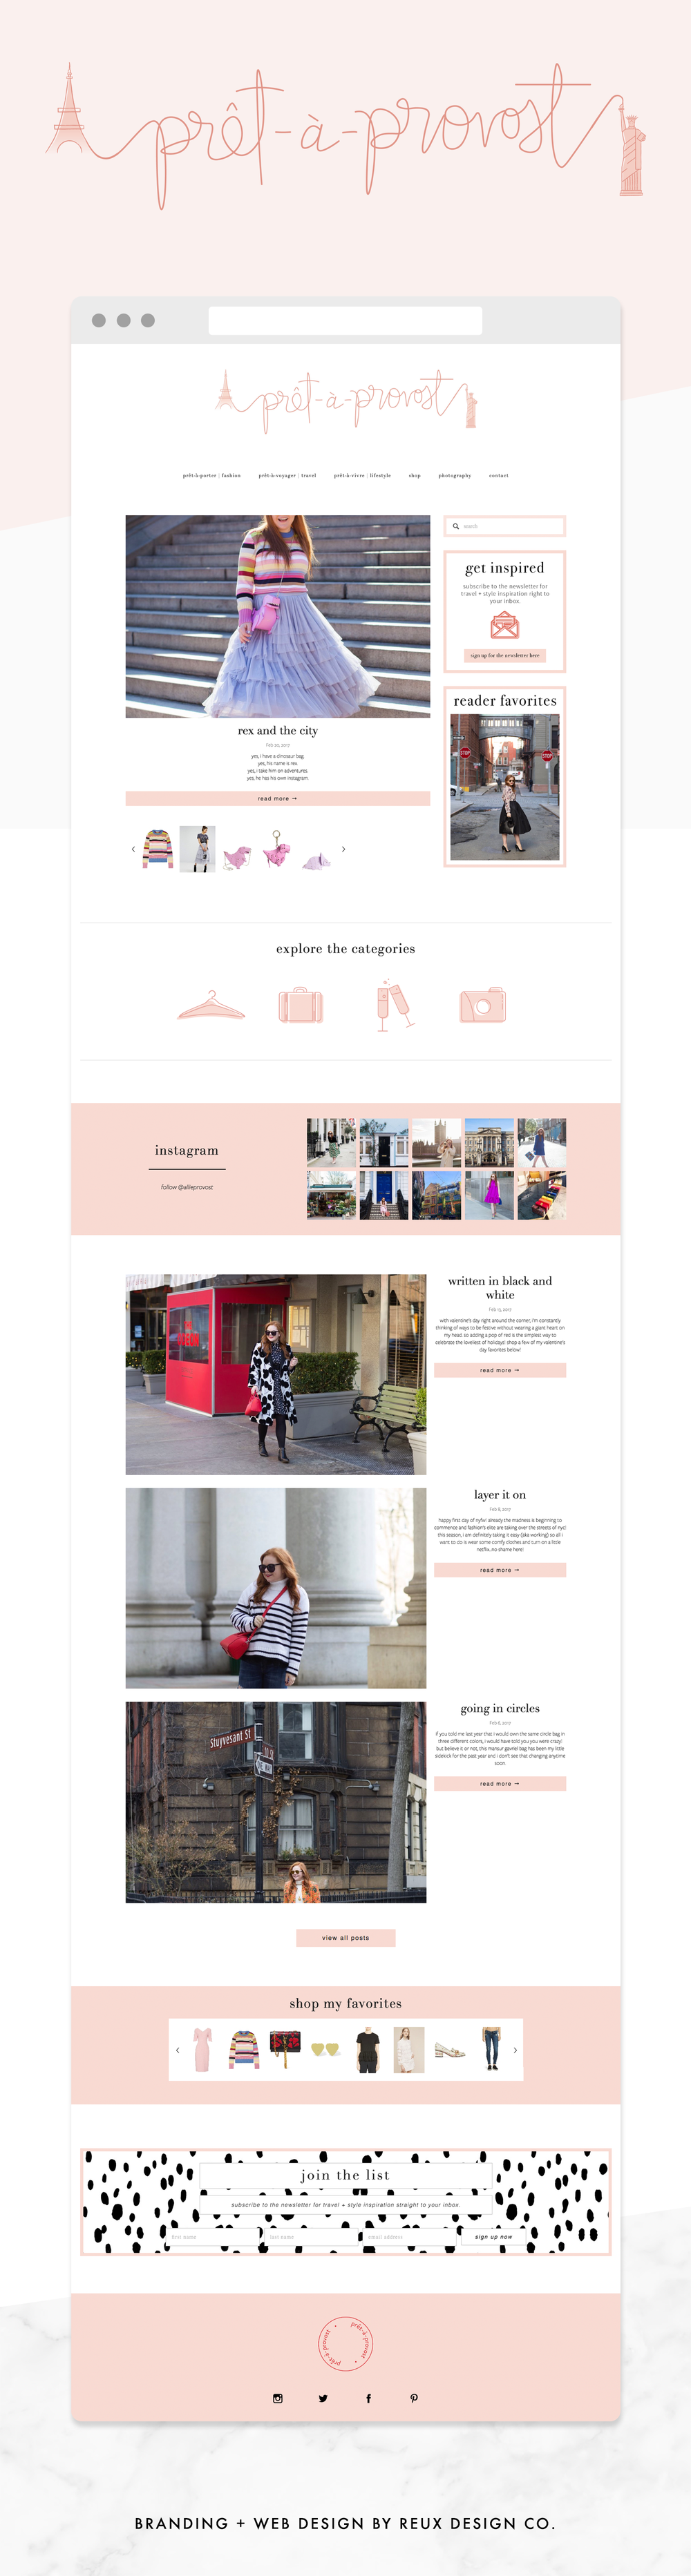 website design on squarespace for fashion and travel blogger | Reux Design Co.